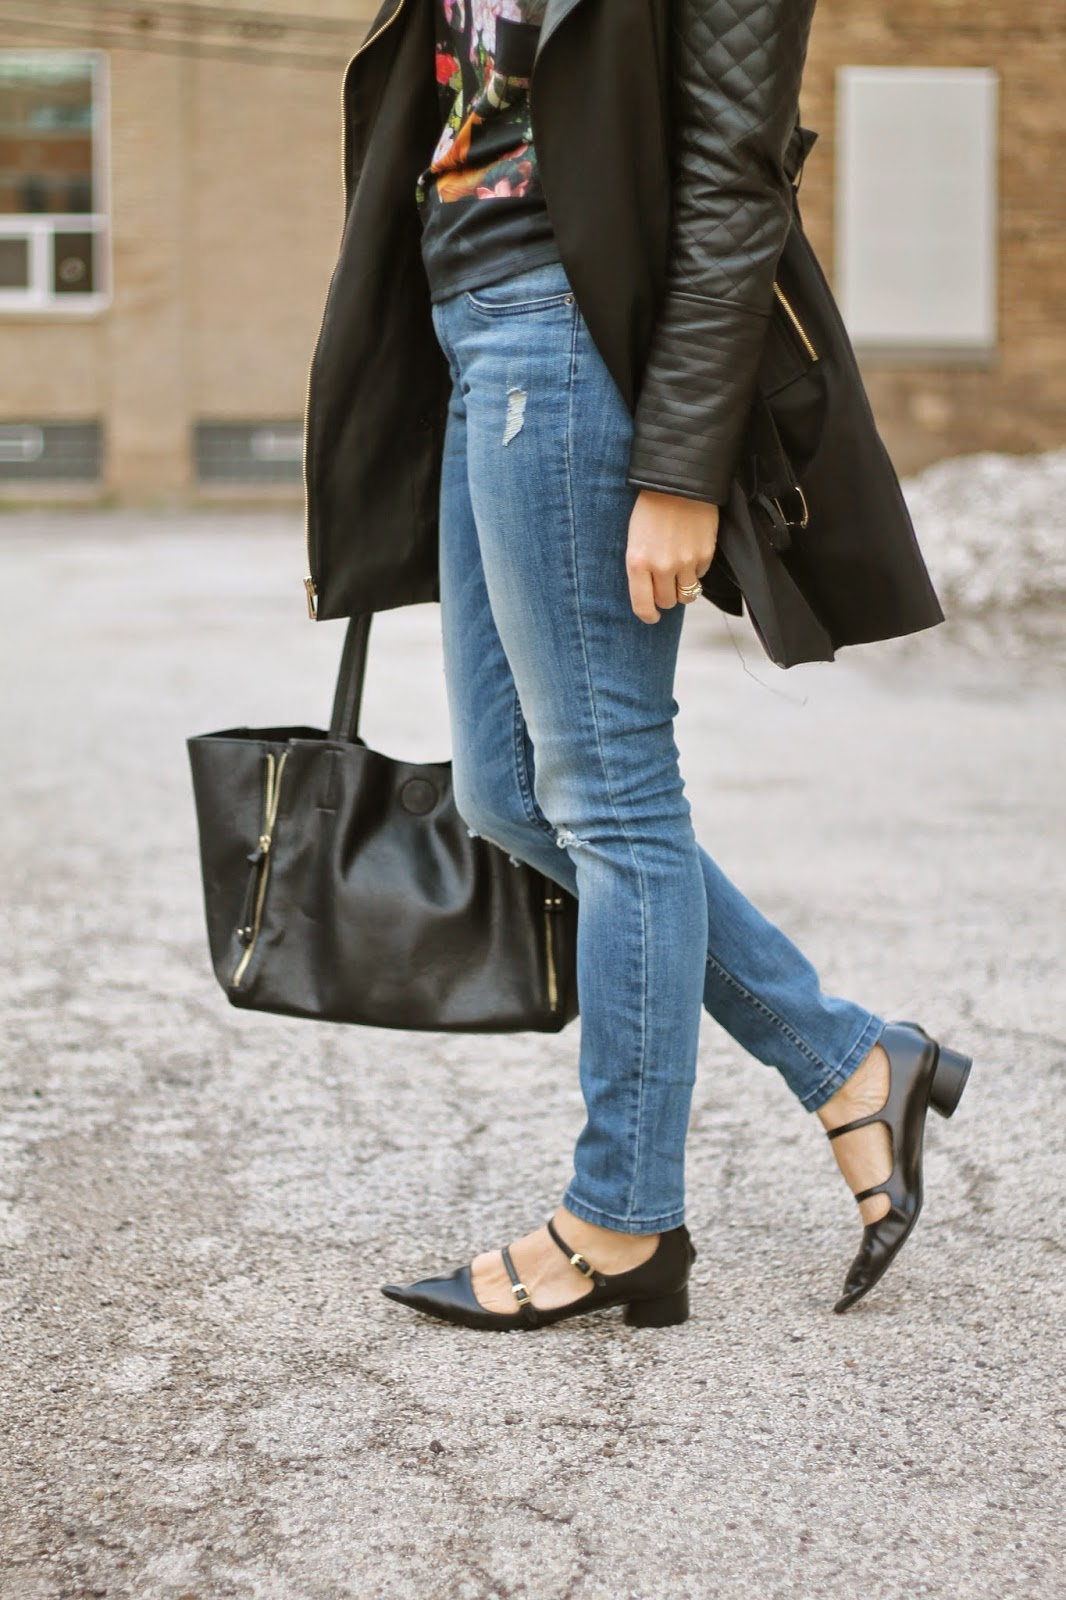 zara, pointed, black, buckle, shoes